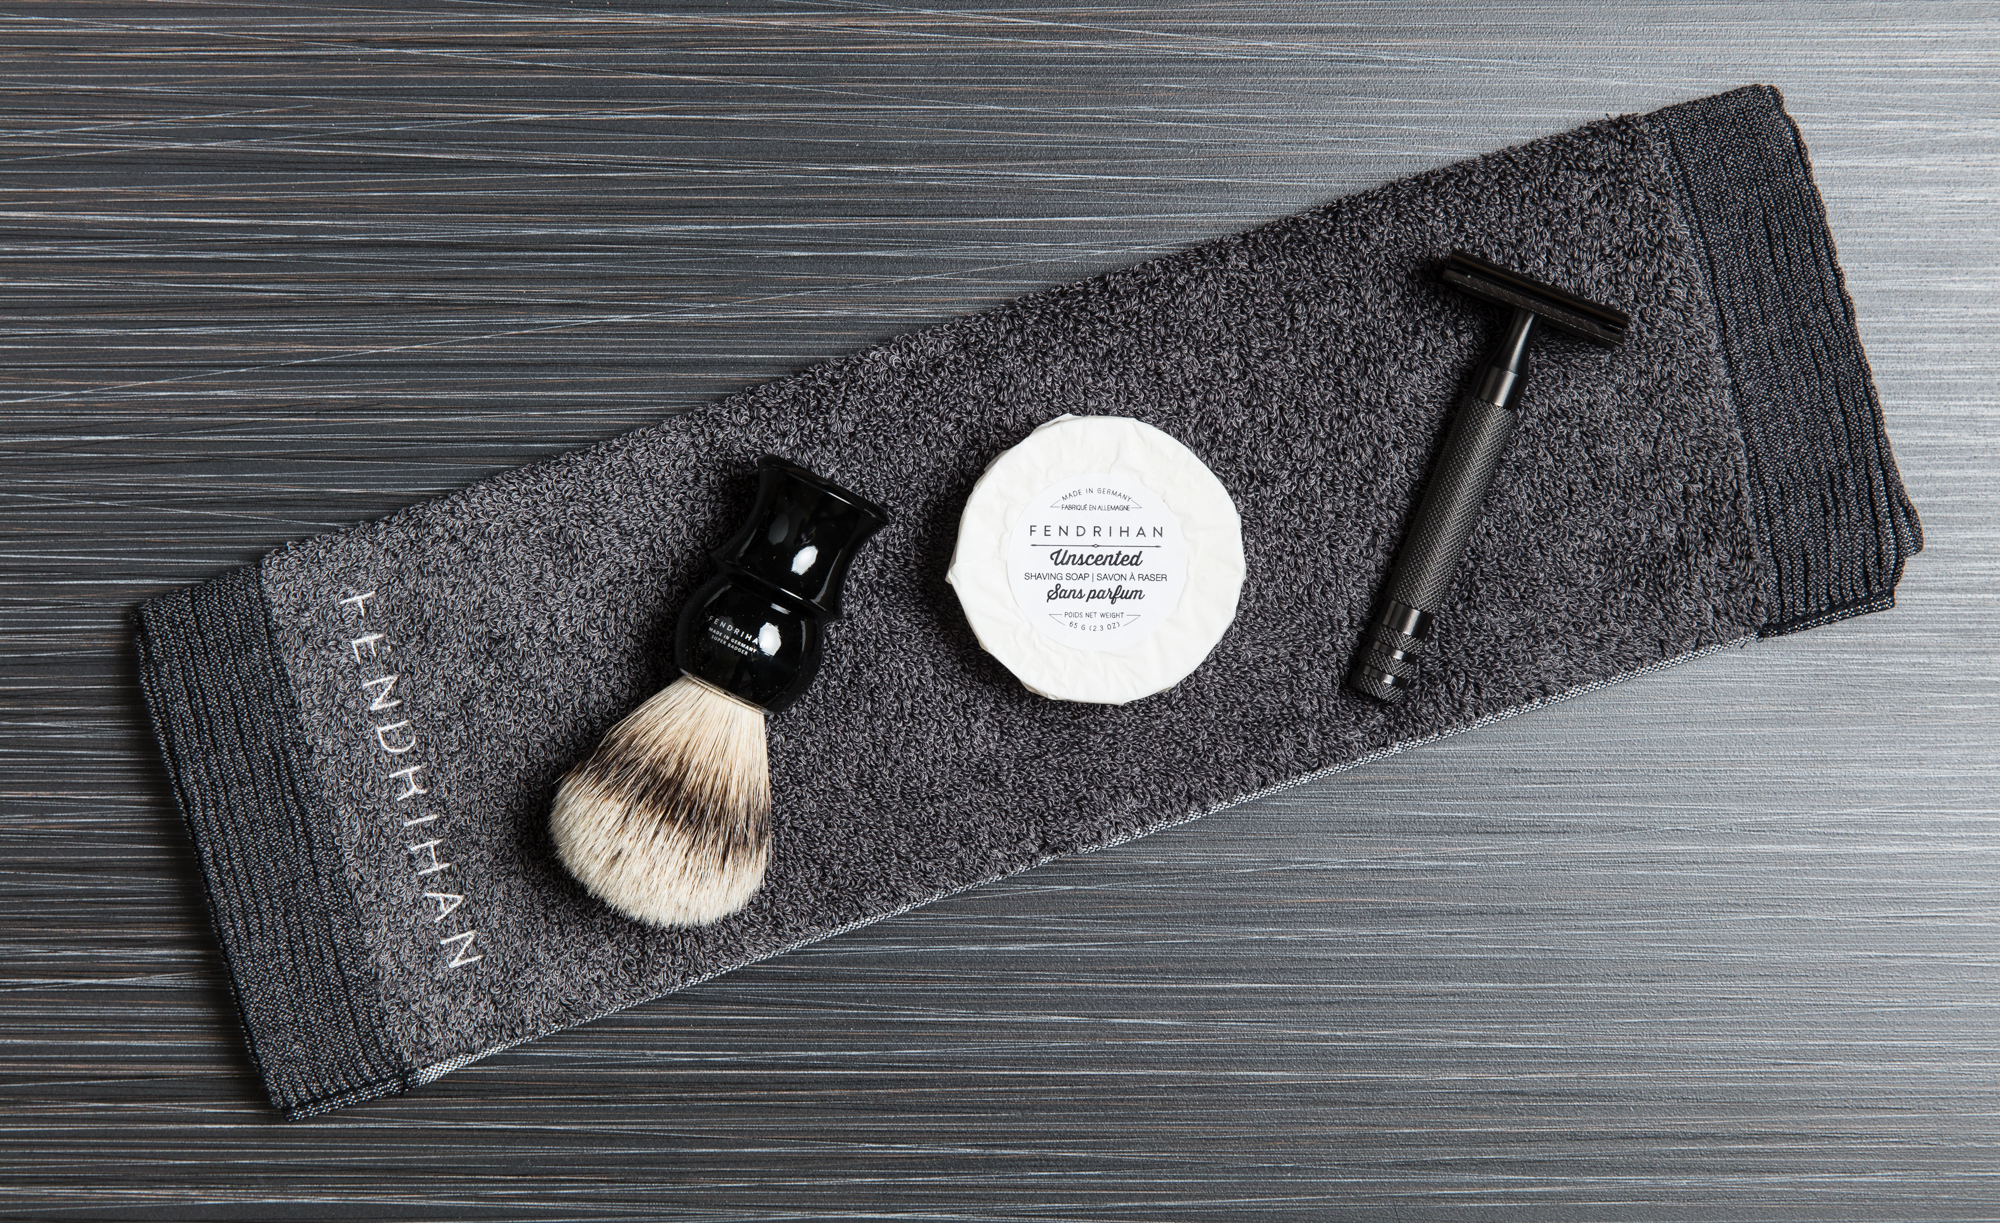 Shaving & Grooming Resolutions for 2019